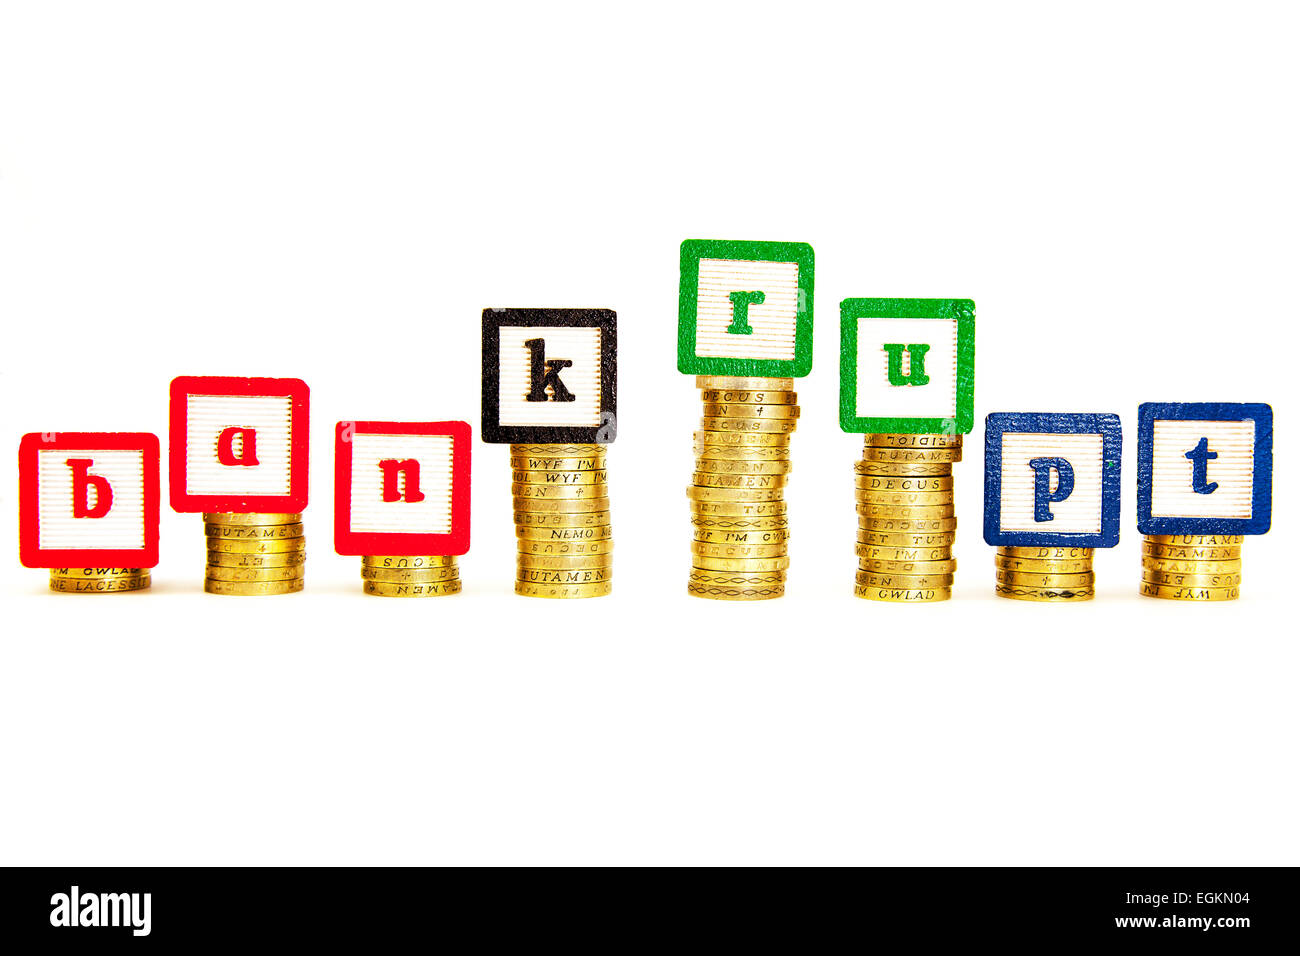 bankrupt bankruptcy money insolvent debt debts bank banks credit skint potless cutout cut out white background copy - Stock Image